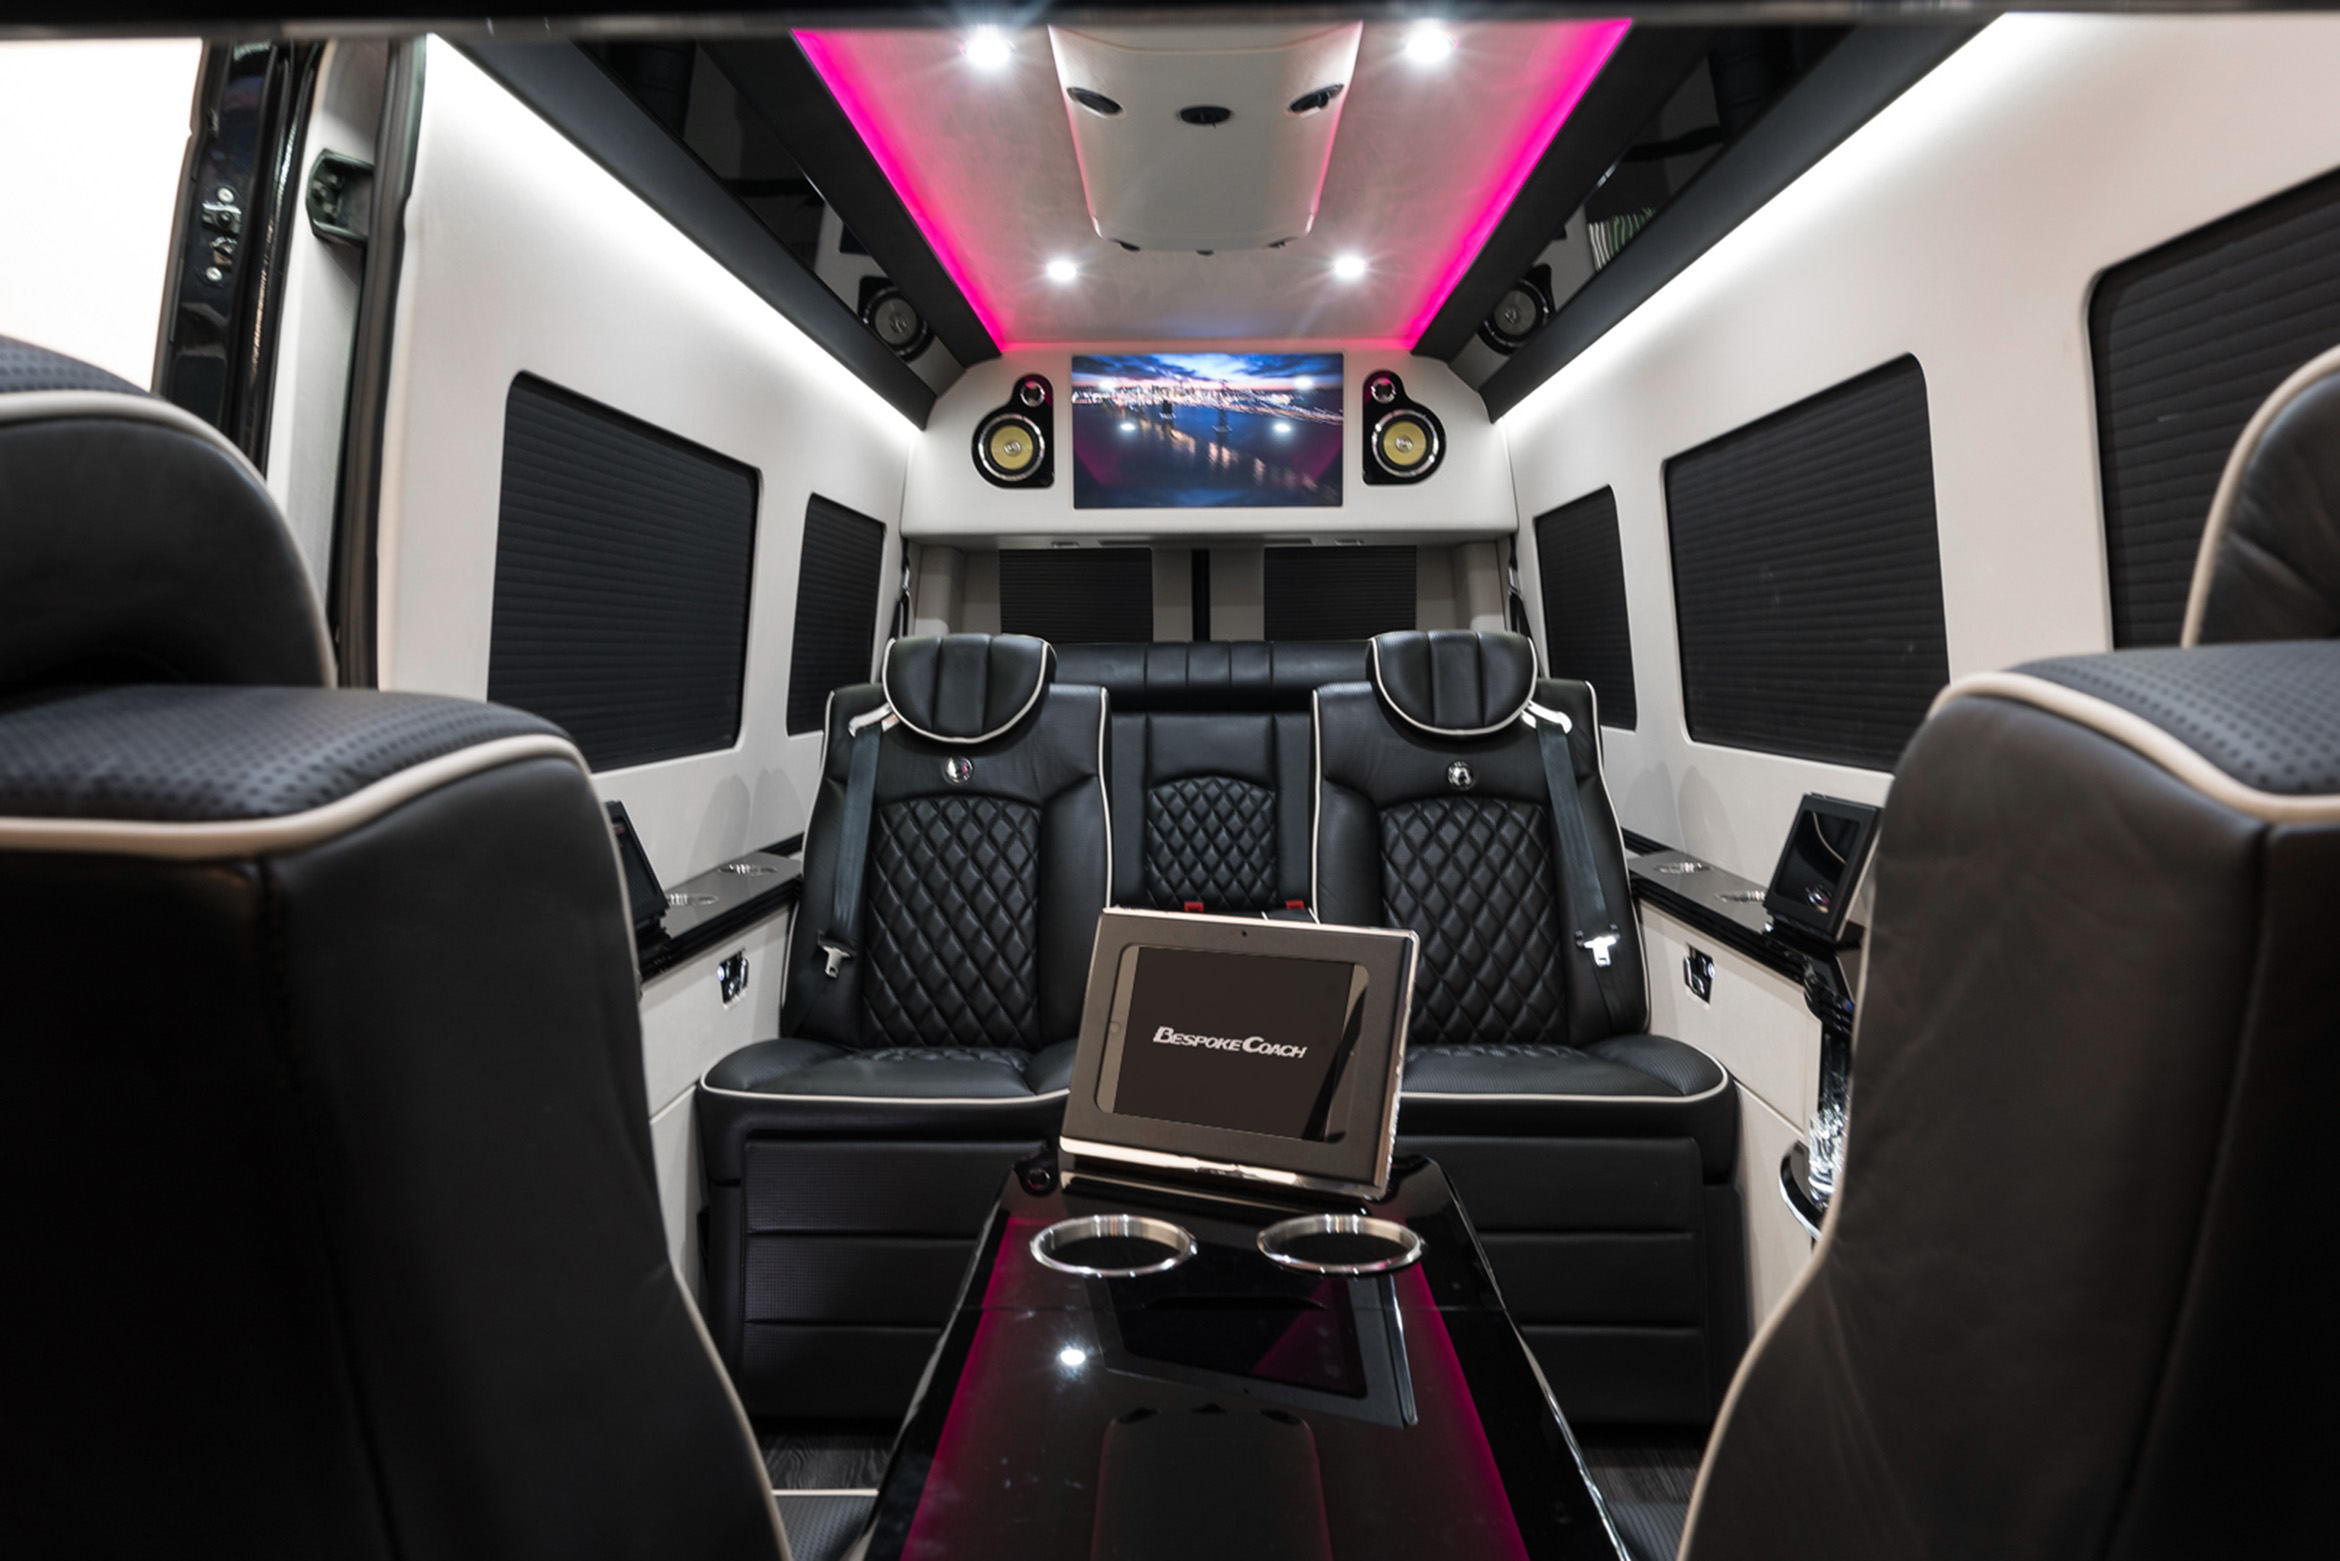 B38 Bespoke Coach Luxury Custom Coaches Sprinter Van